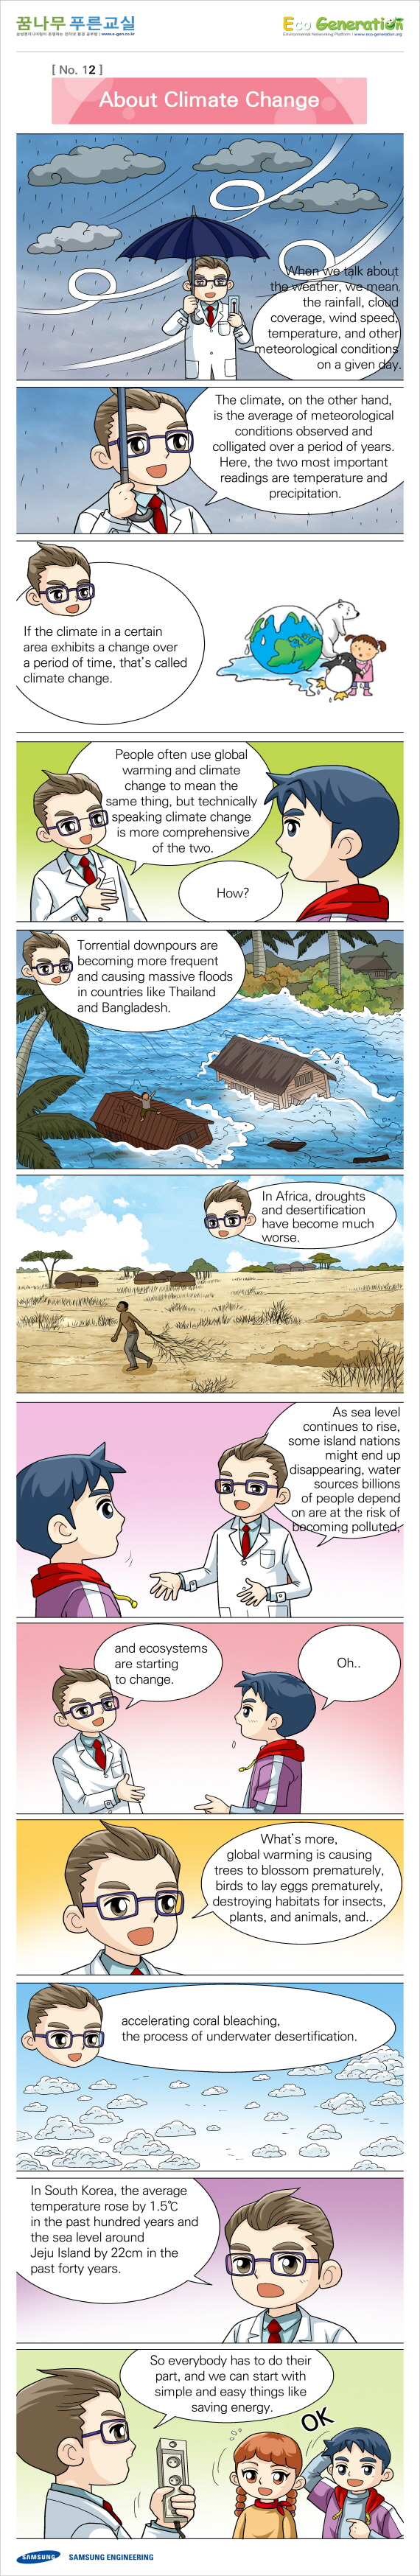 Environmental Comics 12.About Climate Change